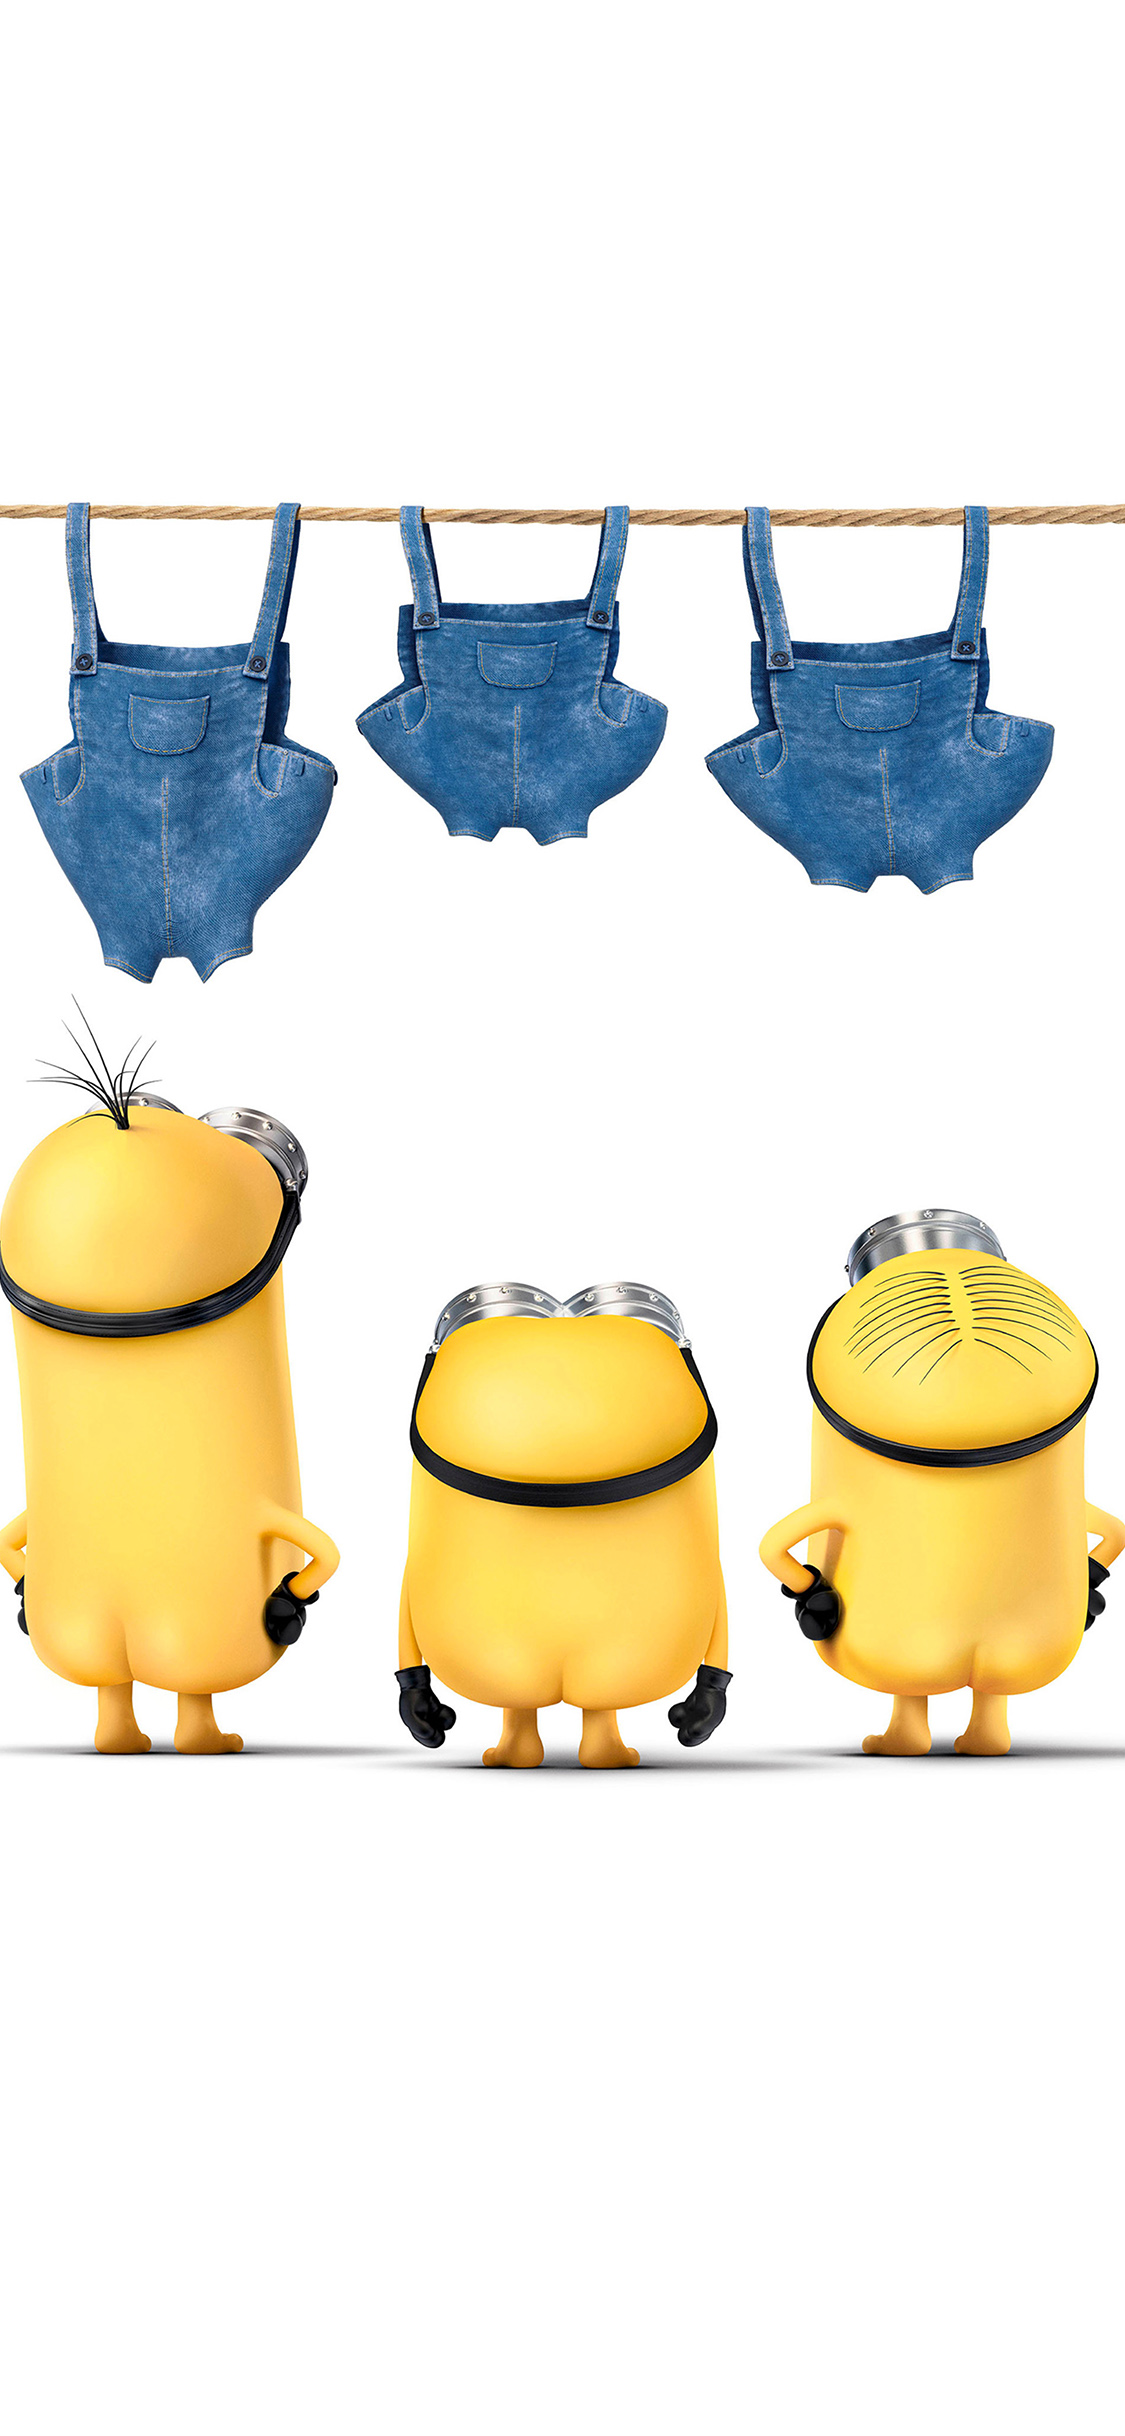 iPhoneXpapers.com-Apple-iPhone-wallpaper-ar89-minions-despicable-nude-me-cute-yellow-art-illustration